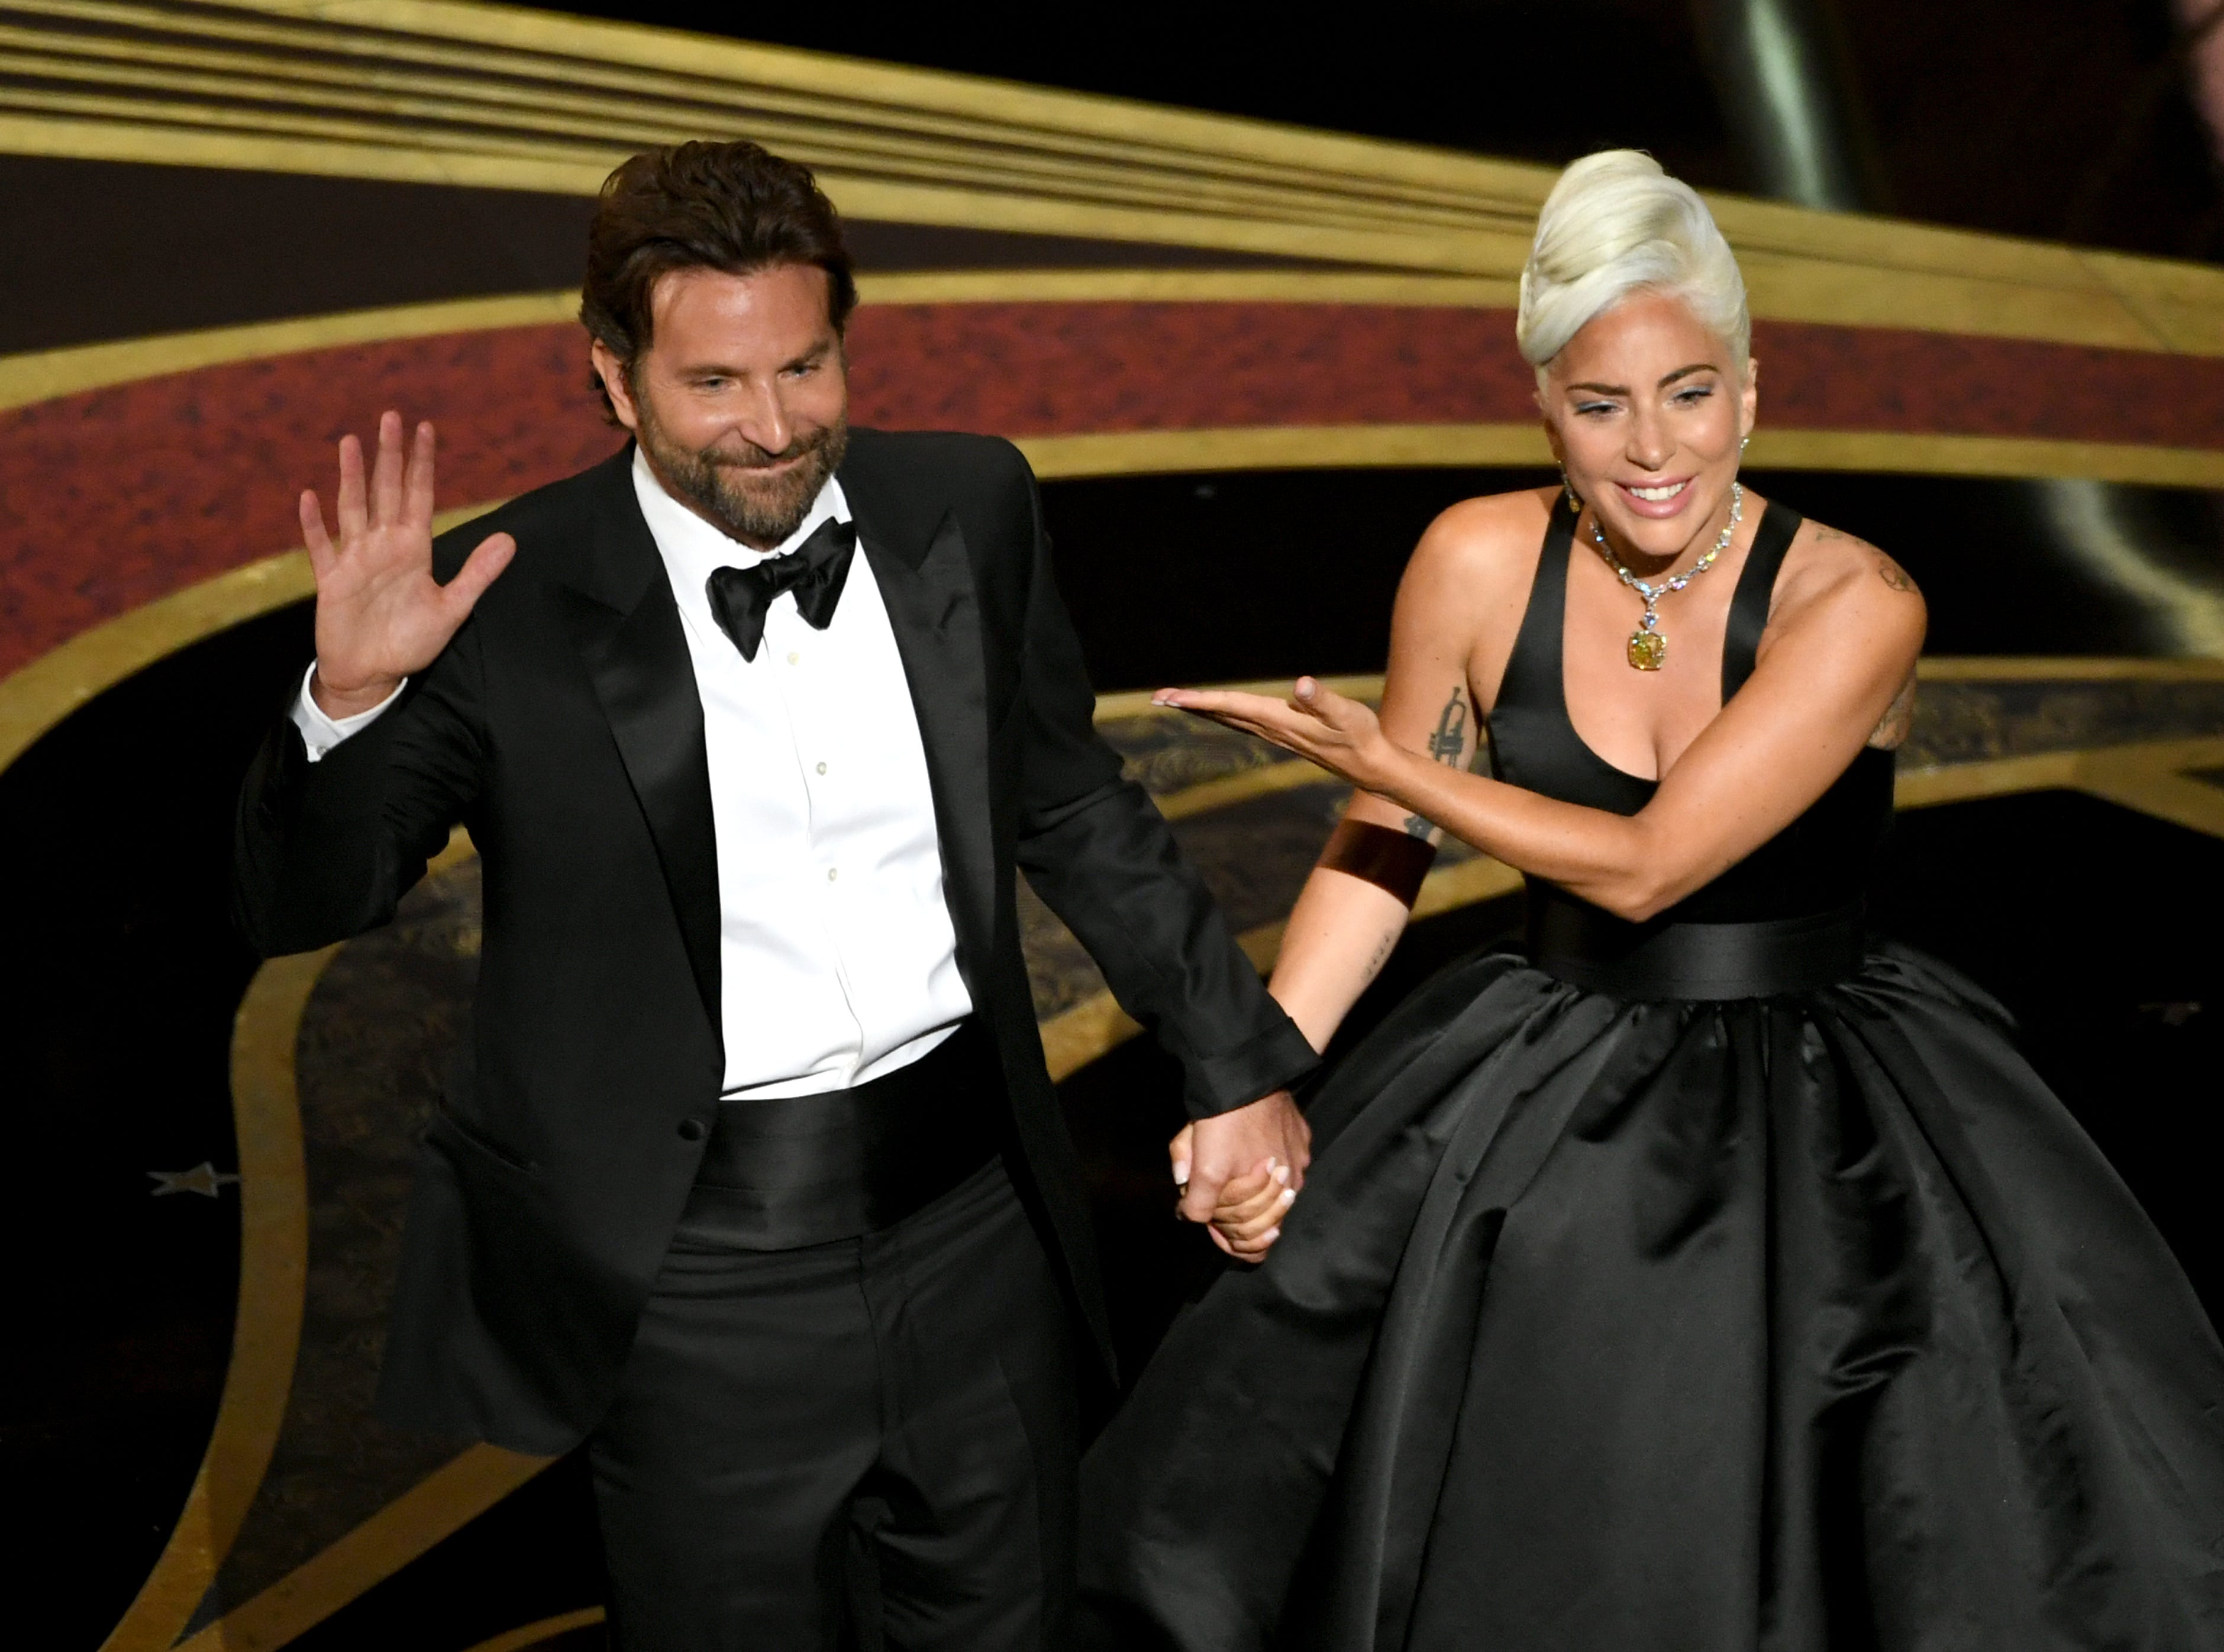 Bradley Cooper and Lady Gaga take a bow after performing onstage during the 91st Annual Academy Awards.